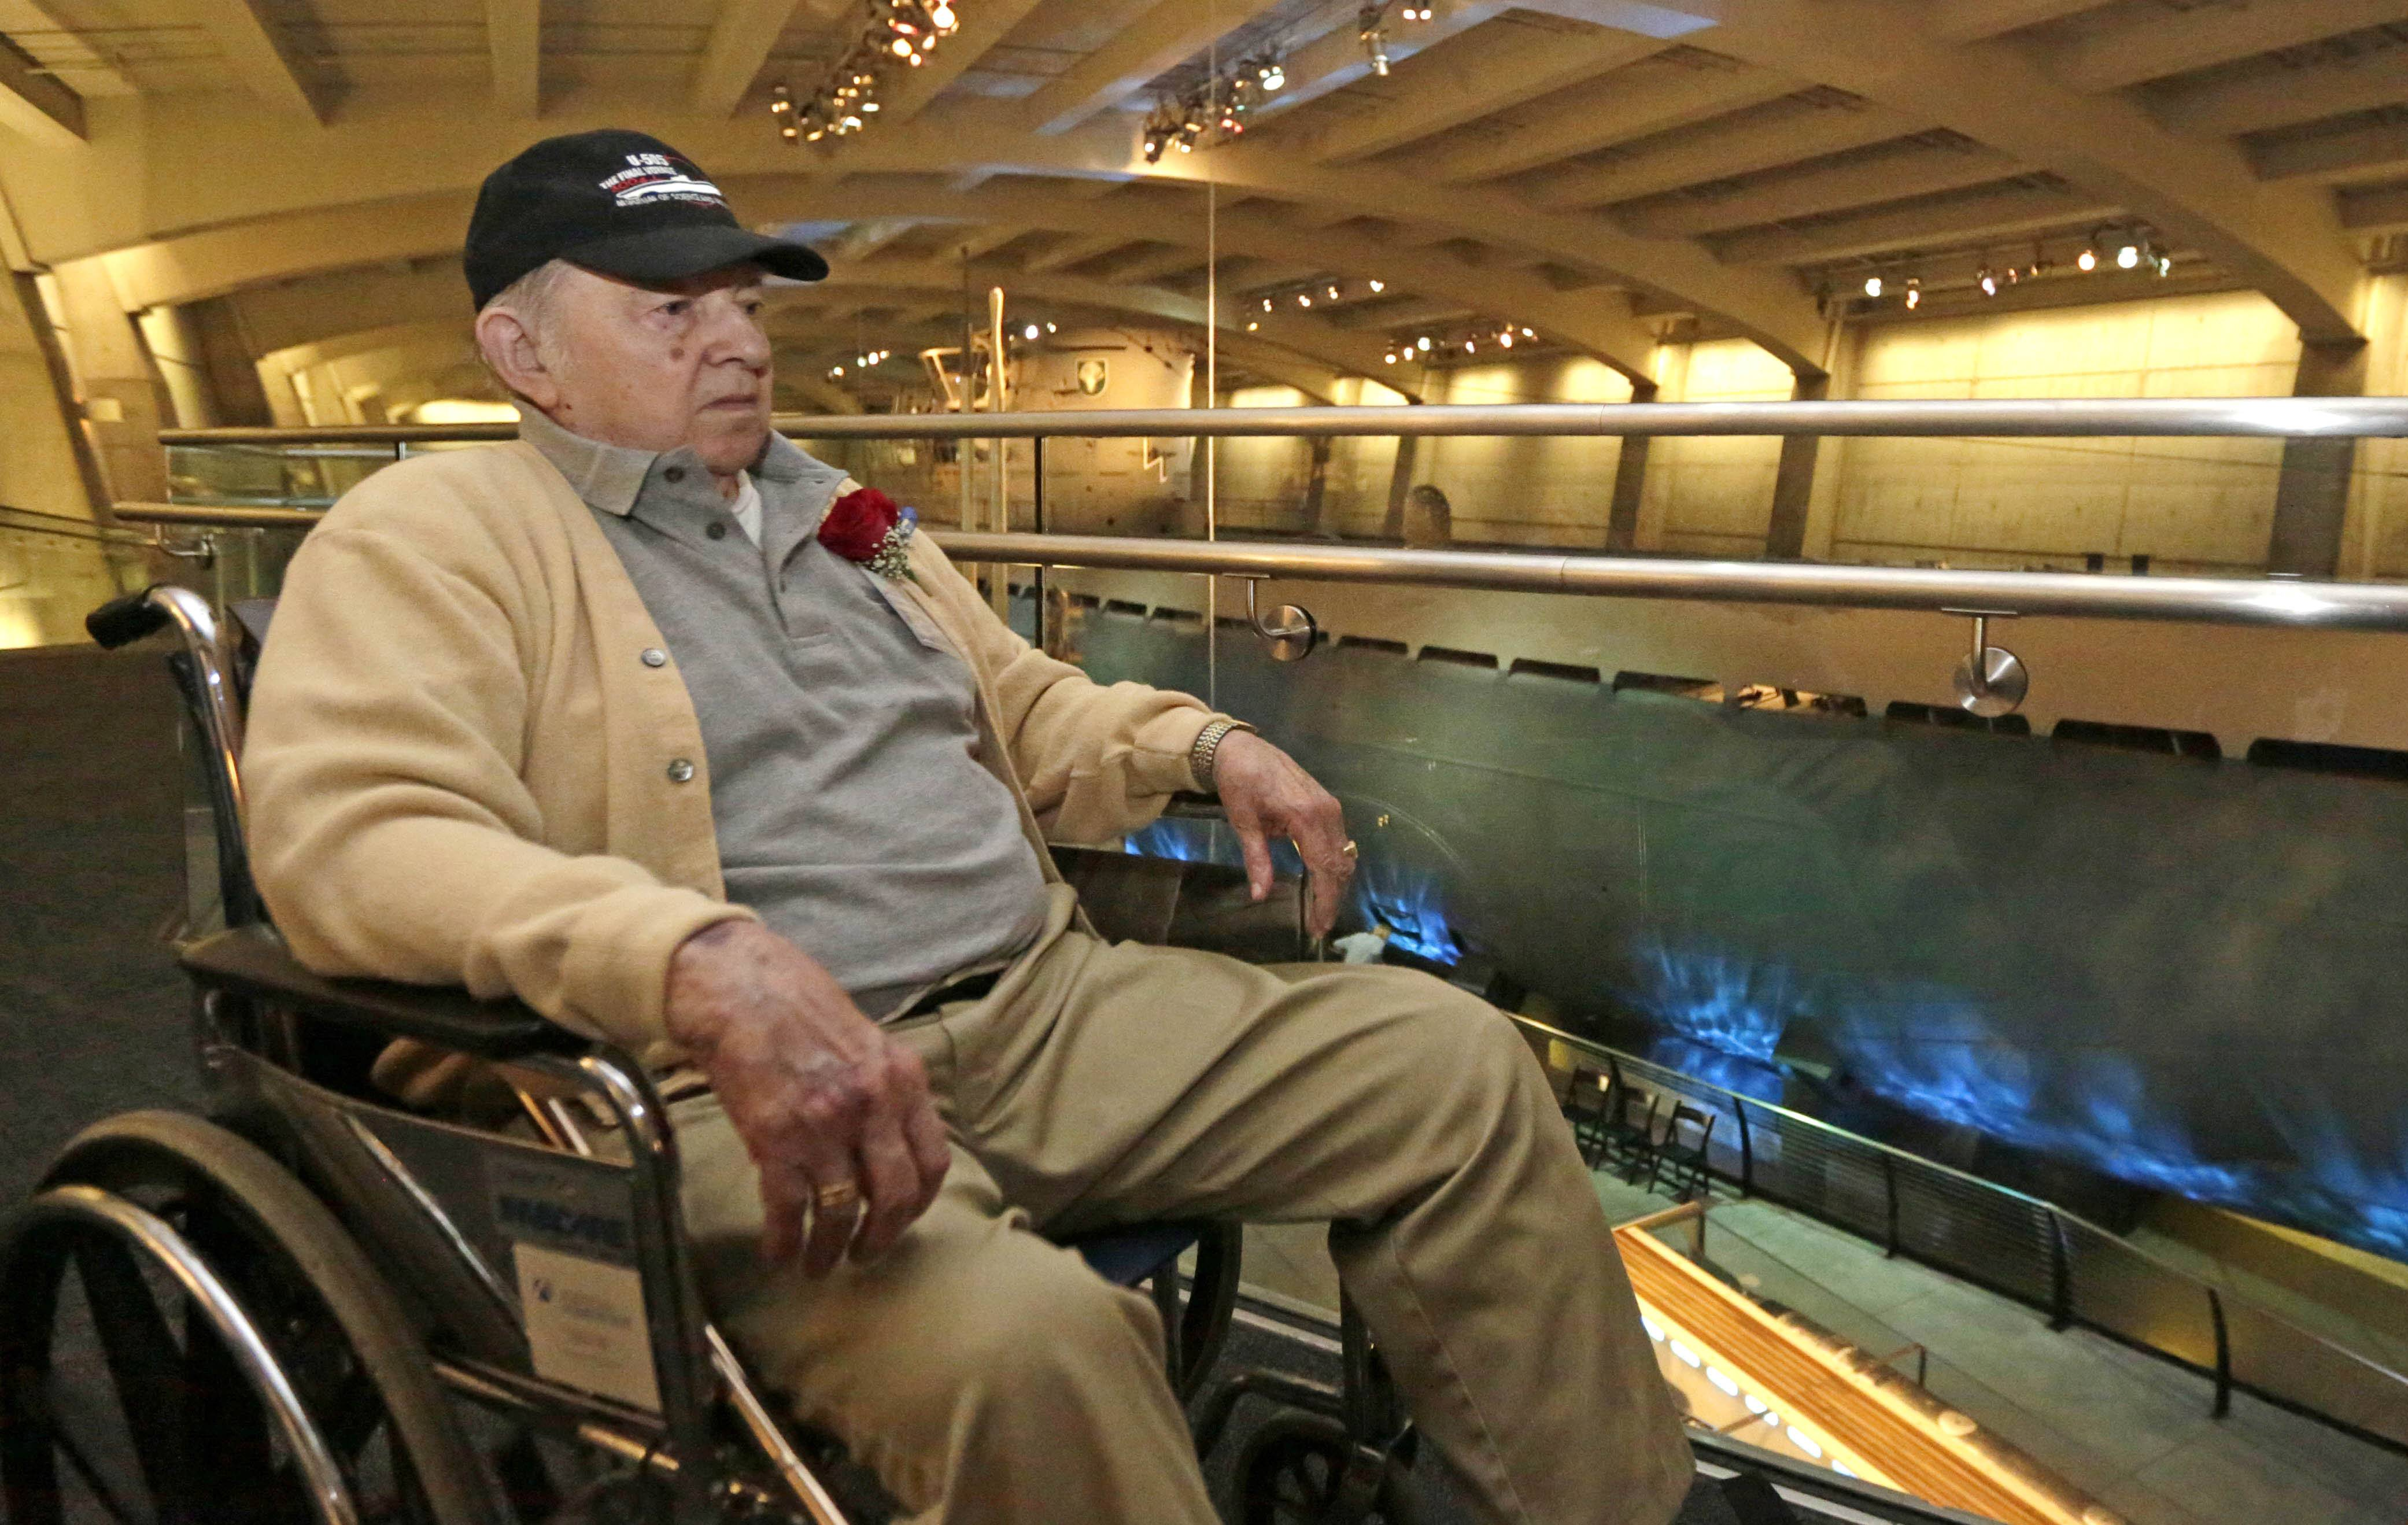 World War II veteran Gordon Höhne of Massachusetts looks down at the captured U-505 German submarine on display at the Museum of Science and Industry in Chicago. It is the only German submarine the U.S. Navy captured during the war and one of five left in the world.